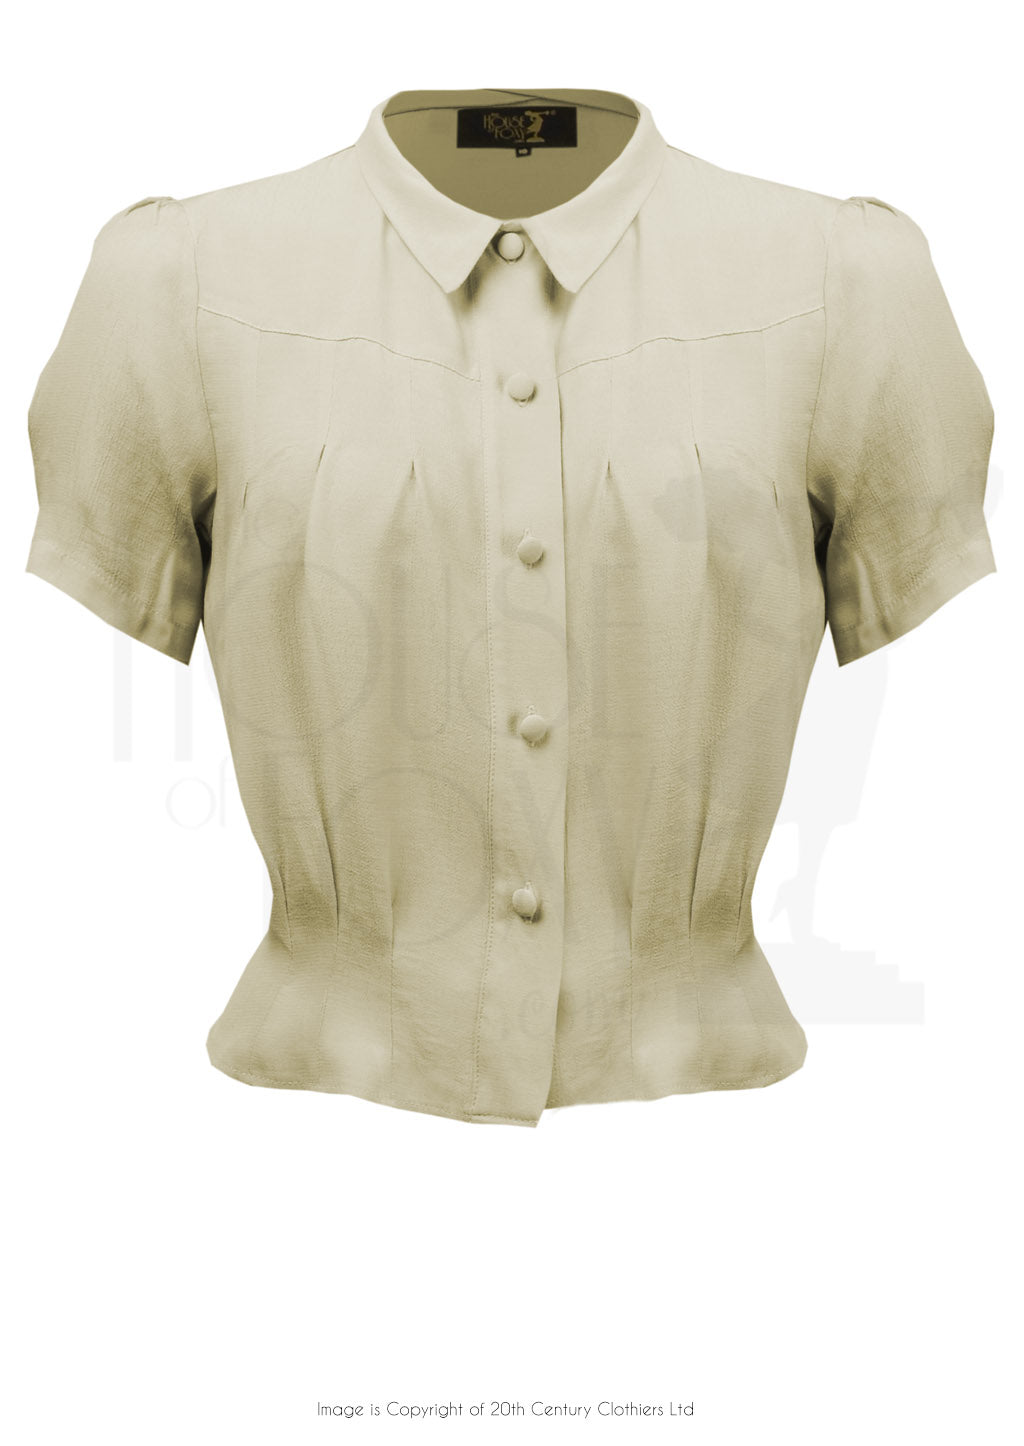 House Of Foxy 1930's Bonnie Blouse in Antique Cream